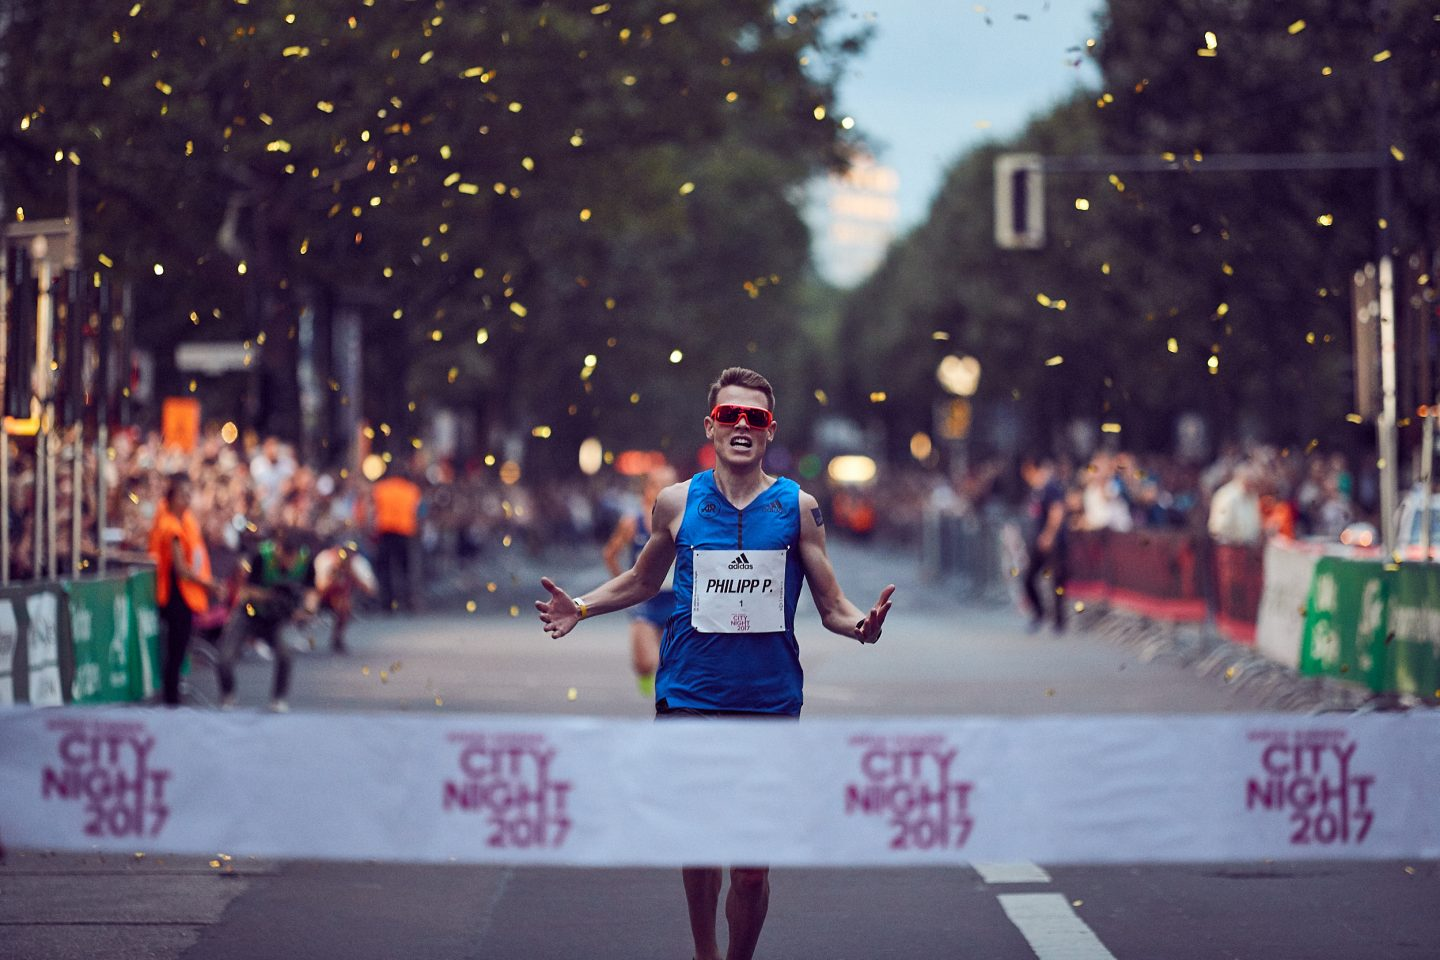 Marathon athlete crossing the finish line at adidas Runners City Night race in Berlin. Phillipp Pflieger_Marathon_Running, finish line, finisher, adidas, Berlin, Berlin Marathon, athlete, competition, setbacks, failure, self-improvement